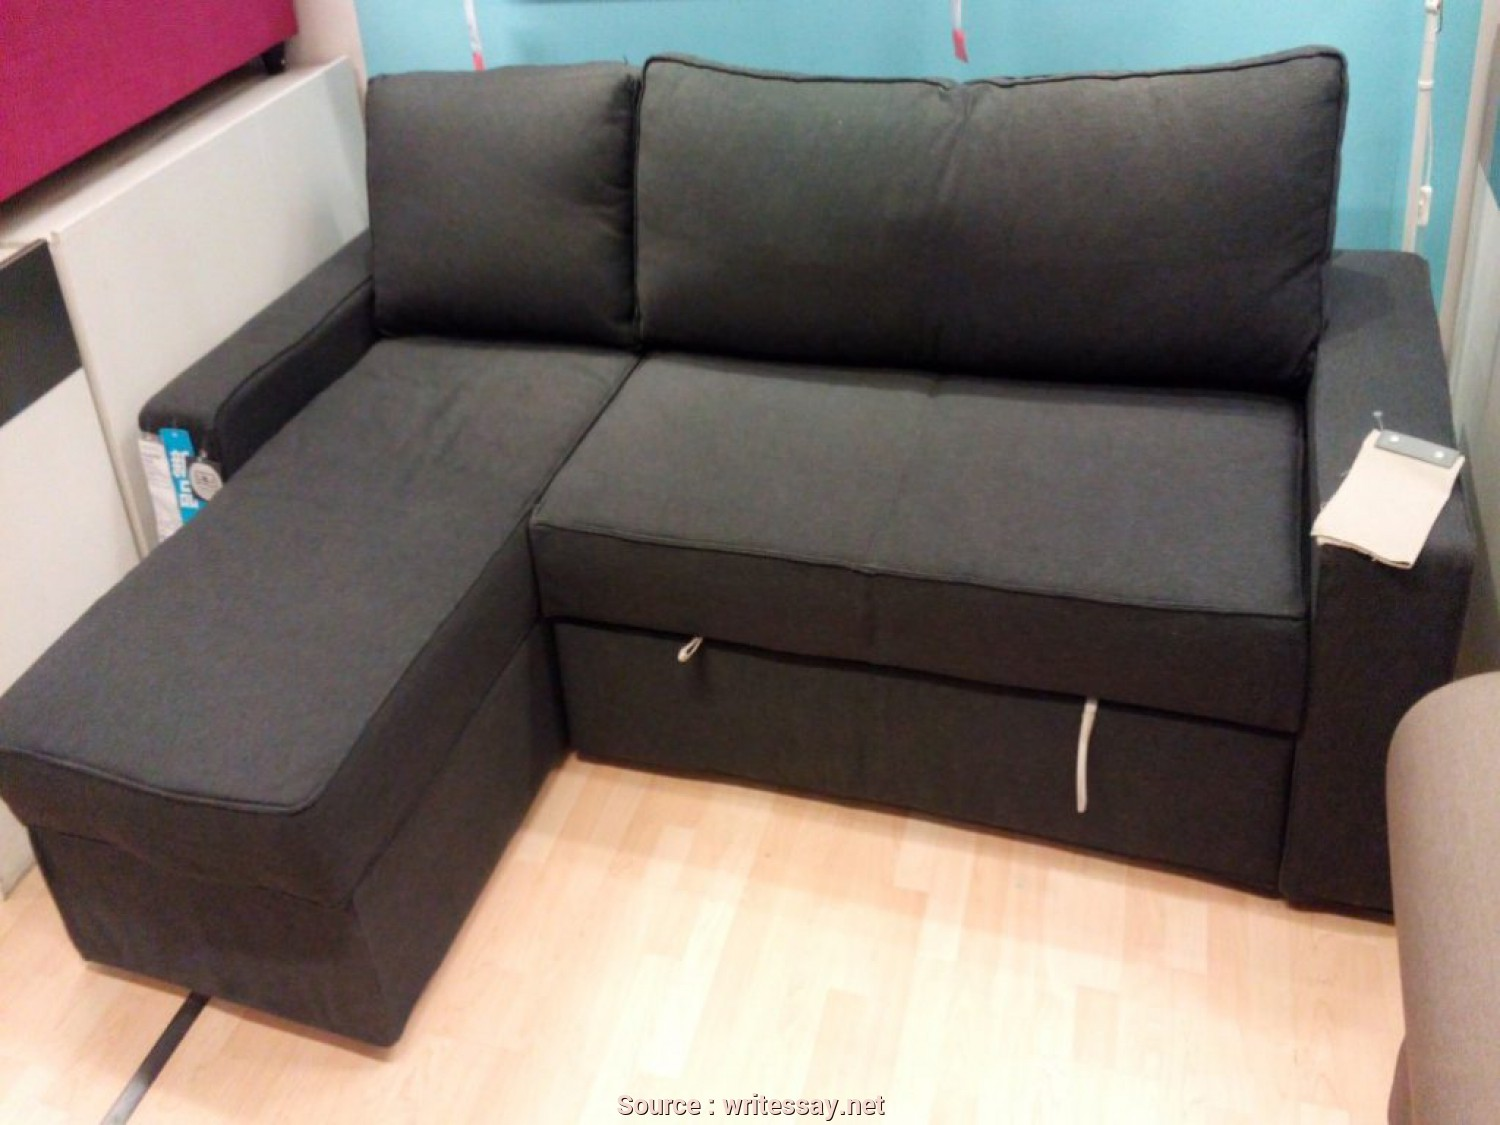 Backabro Canape Ikea, A Buon Mercato Ikea Chaise Belle Ikea Vilasund, Backabro Review Return Of, Sofa, Clones